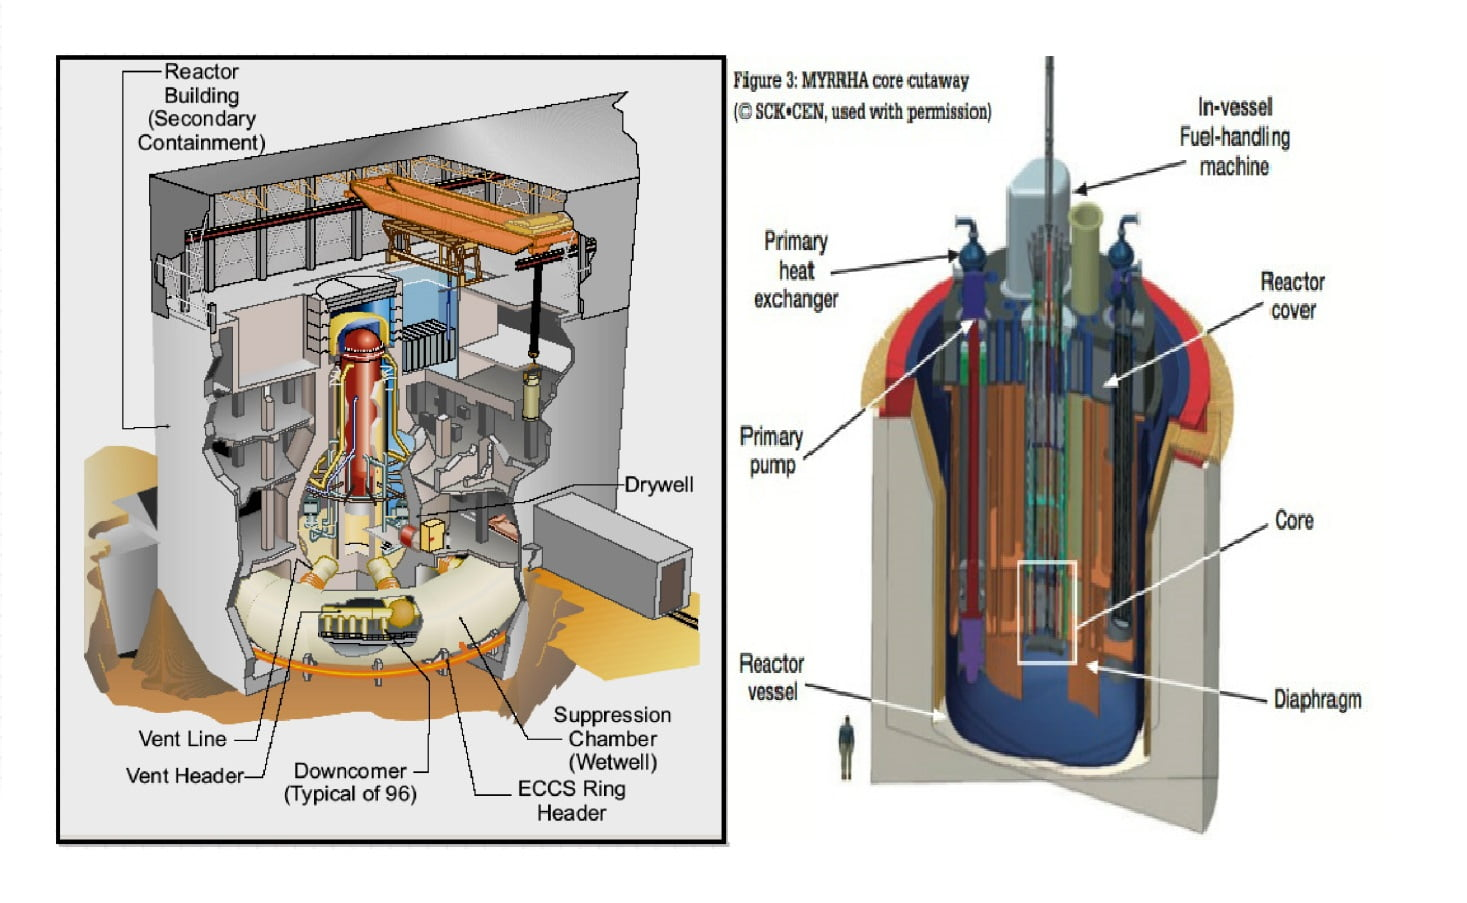 nuclear power plant diagram wiring for boat trailer reactor its types parts and working engineering